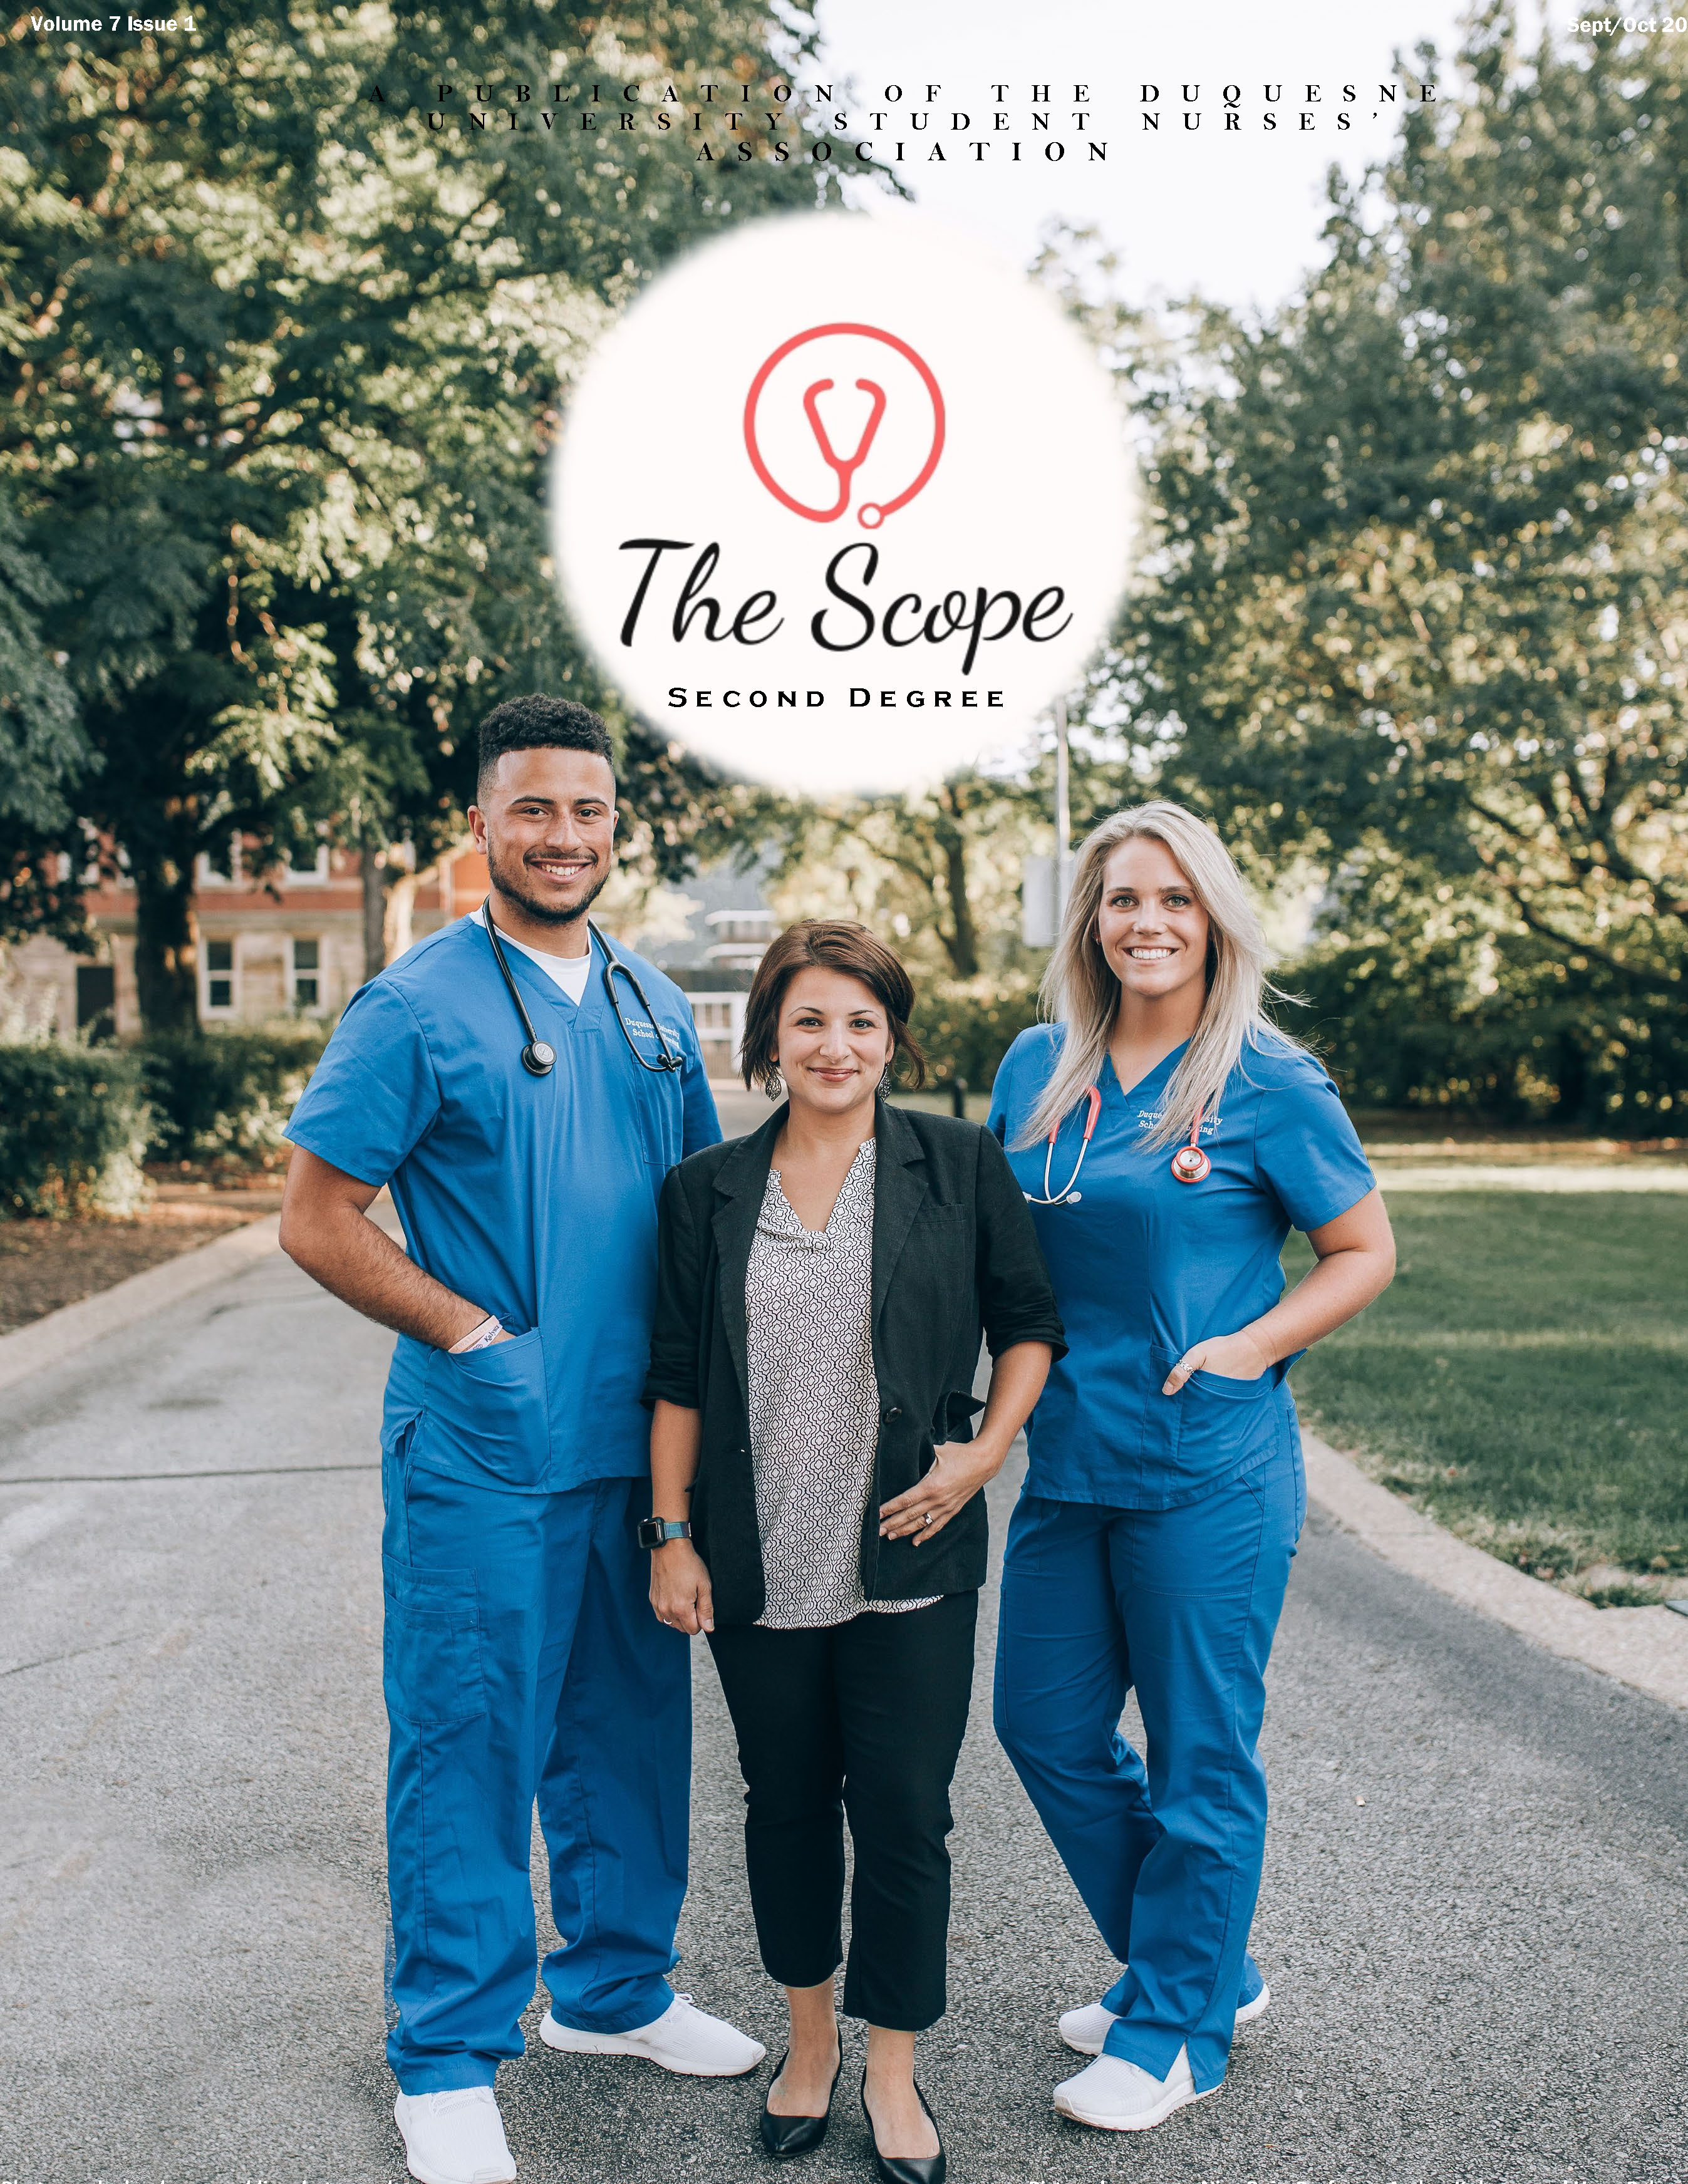 The Scope October 2019